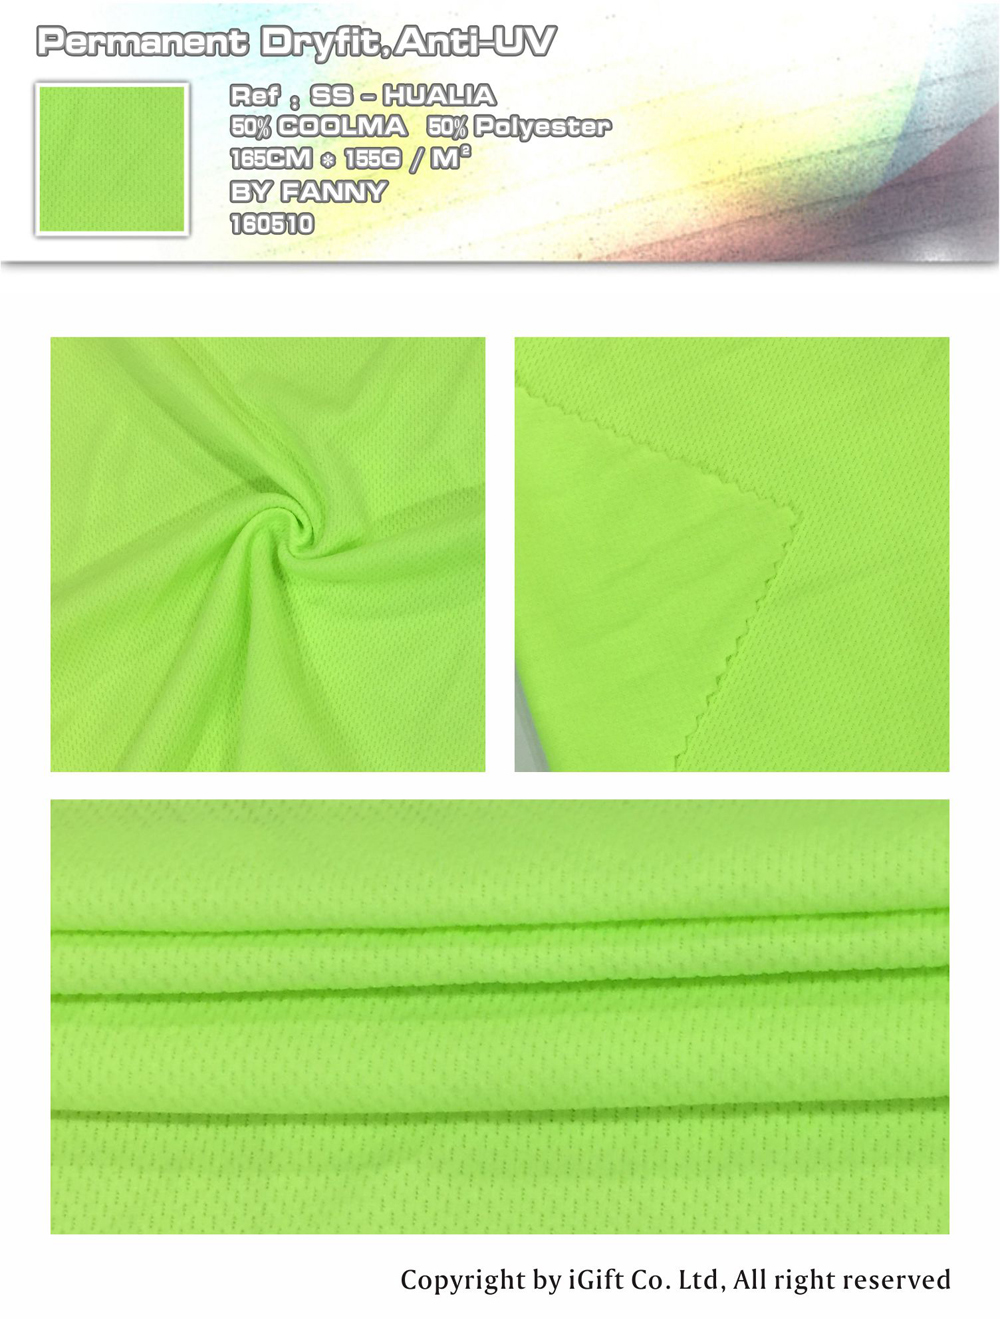 Permanent Dryfit,Anit-UV  Ref:SS-HUALIA    50% COOLMA   50%Polyester    165CM*155G/M²   BY  FANNY   160510